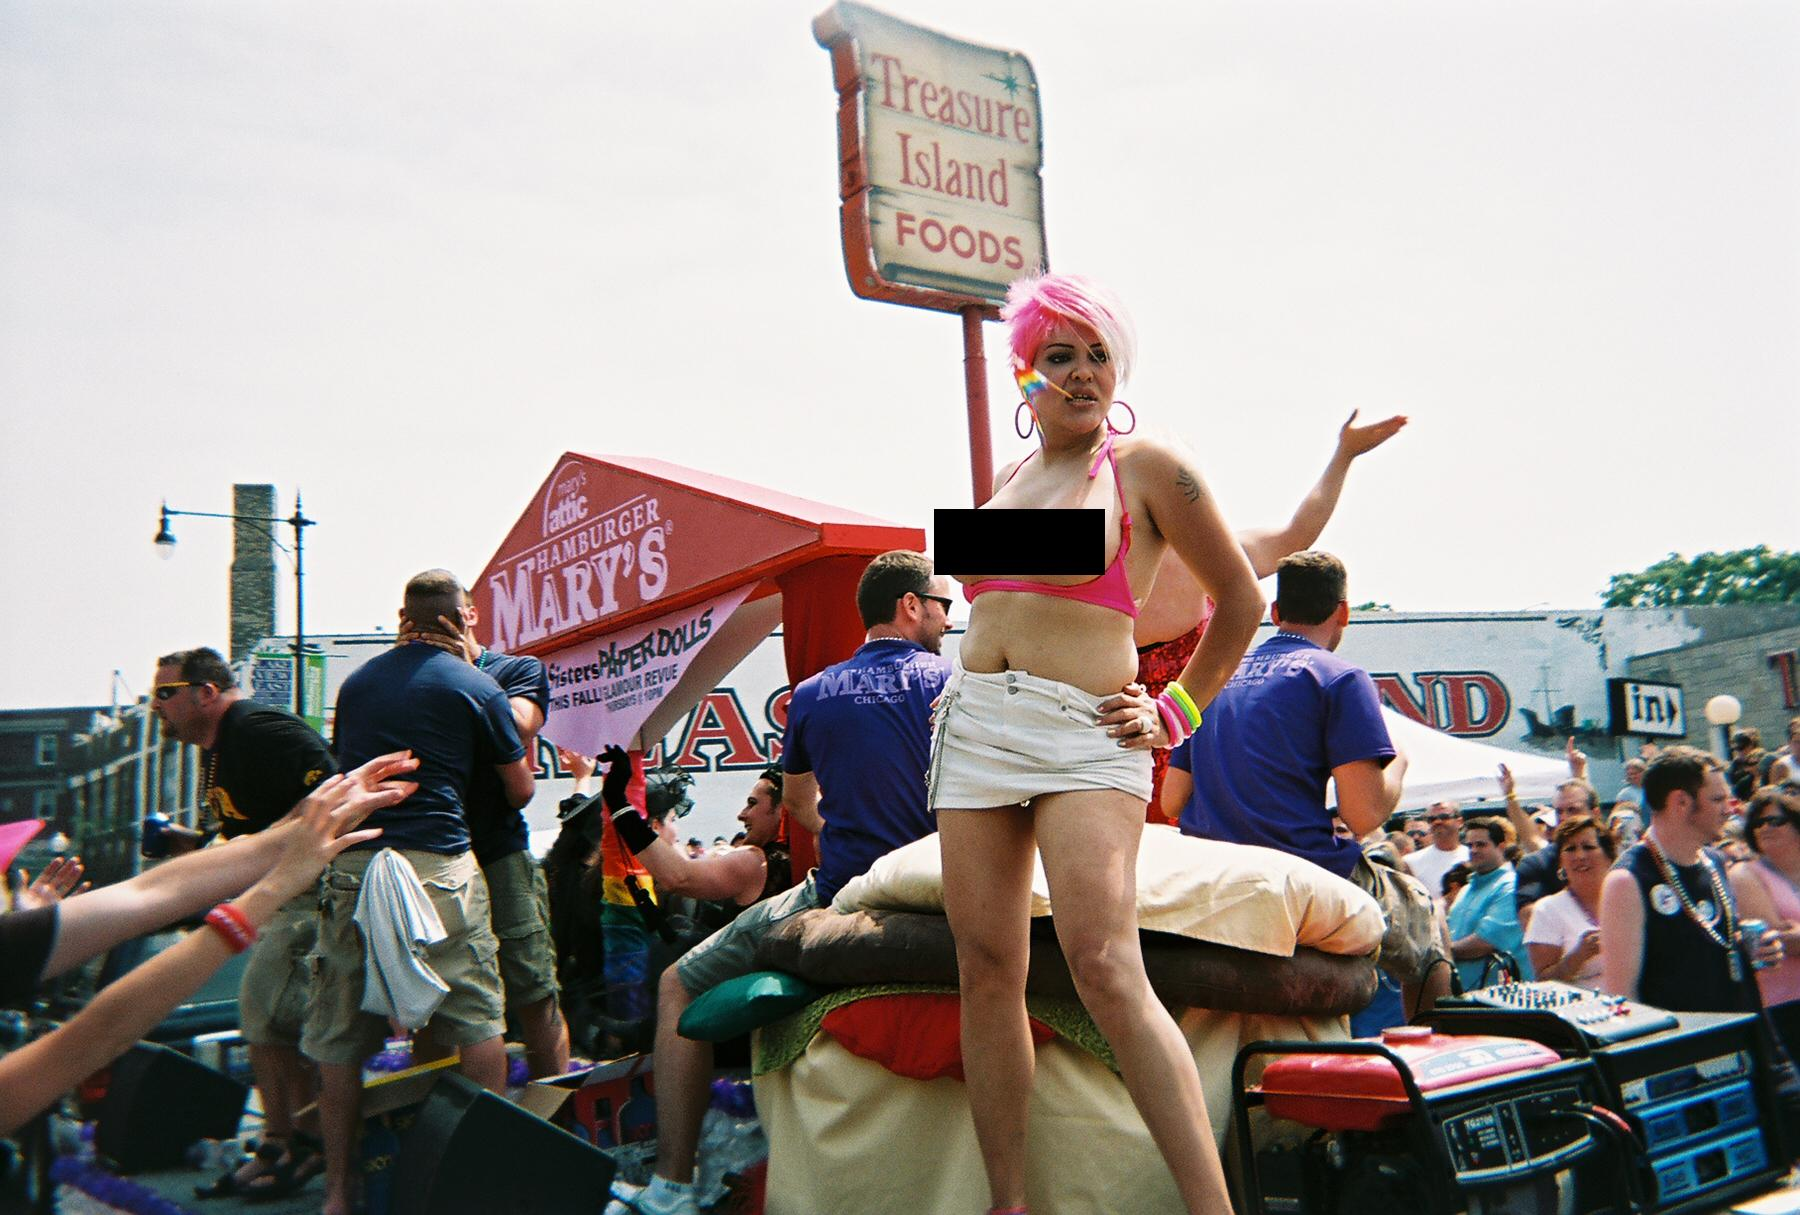 topless_transsexual_chicago_shame_parade_07.JPG